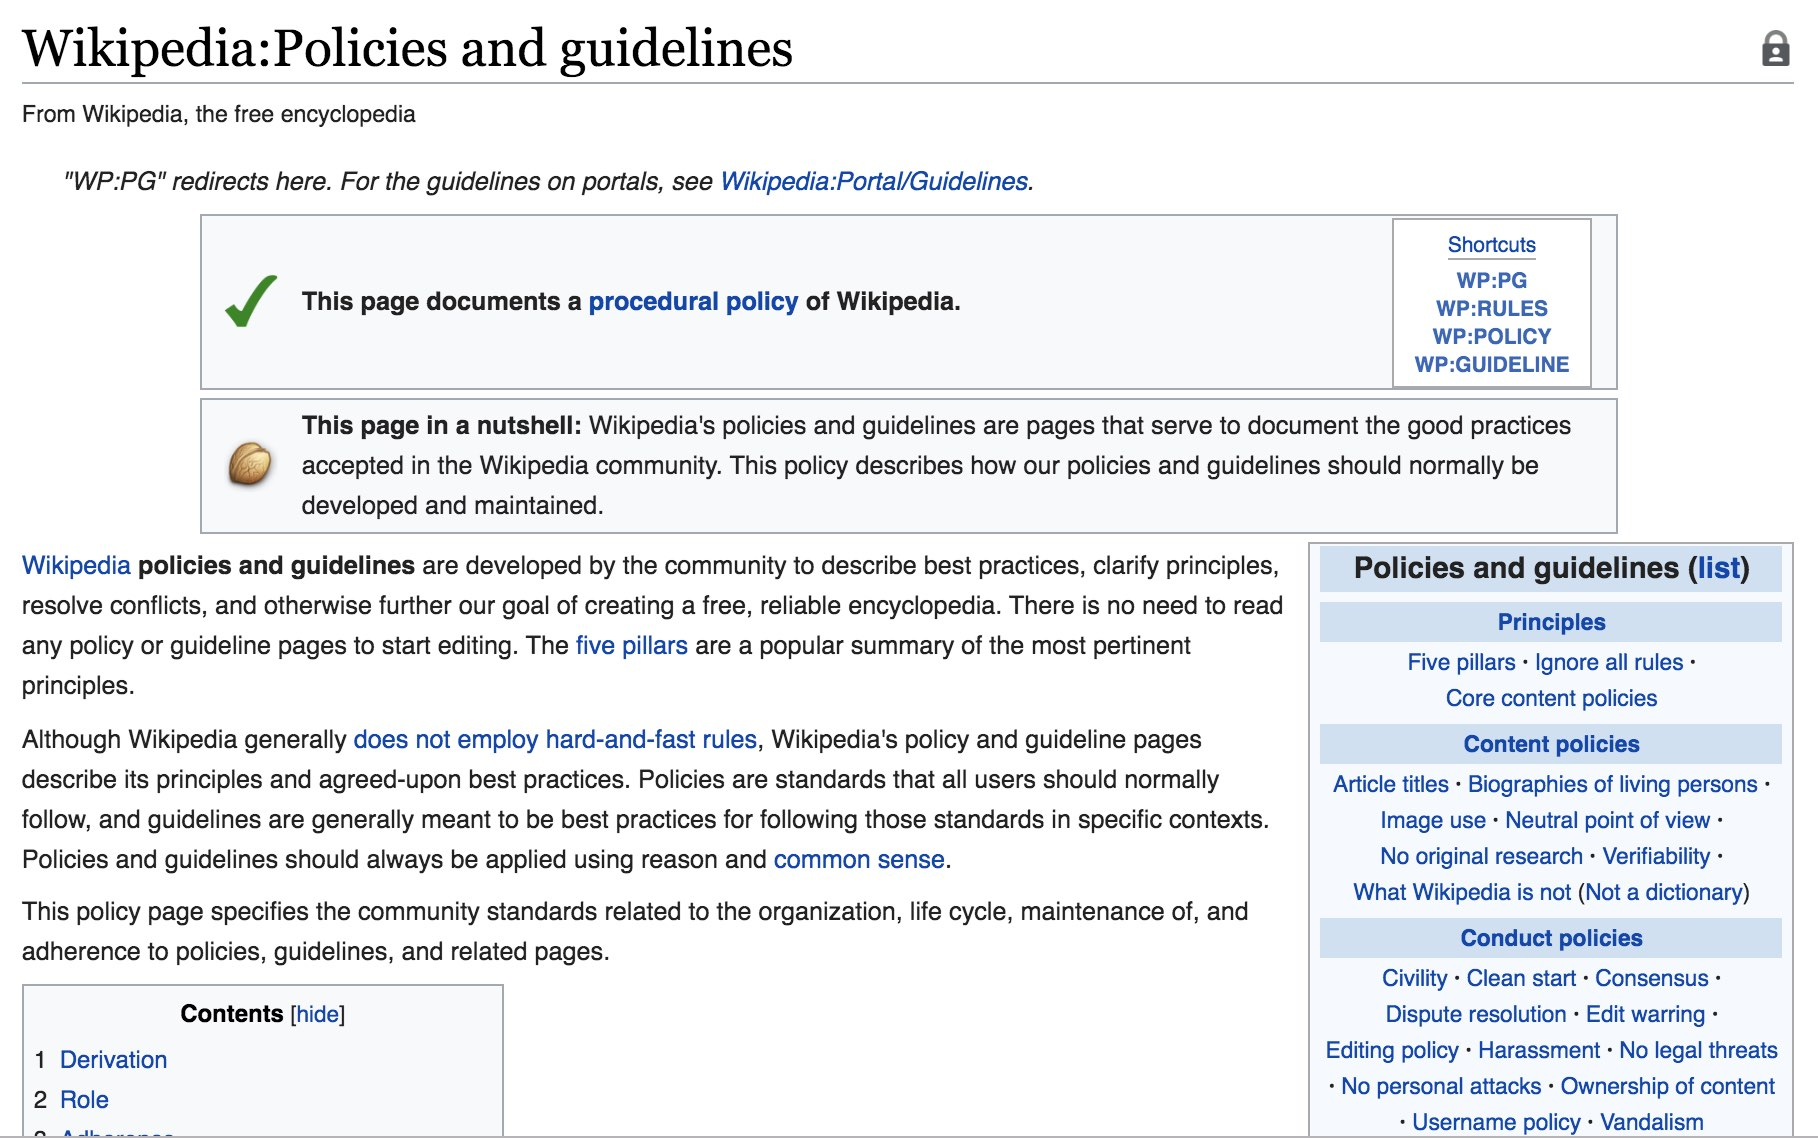 Published Policies